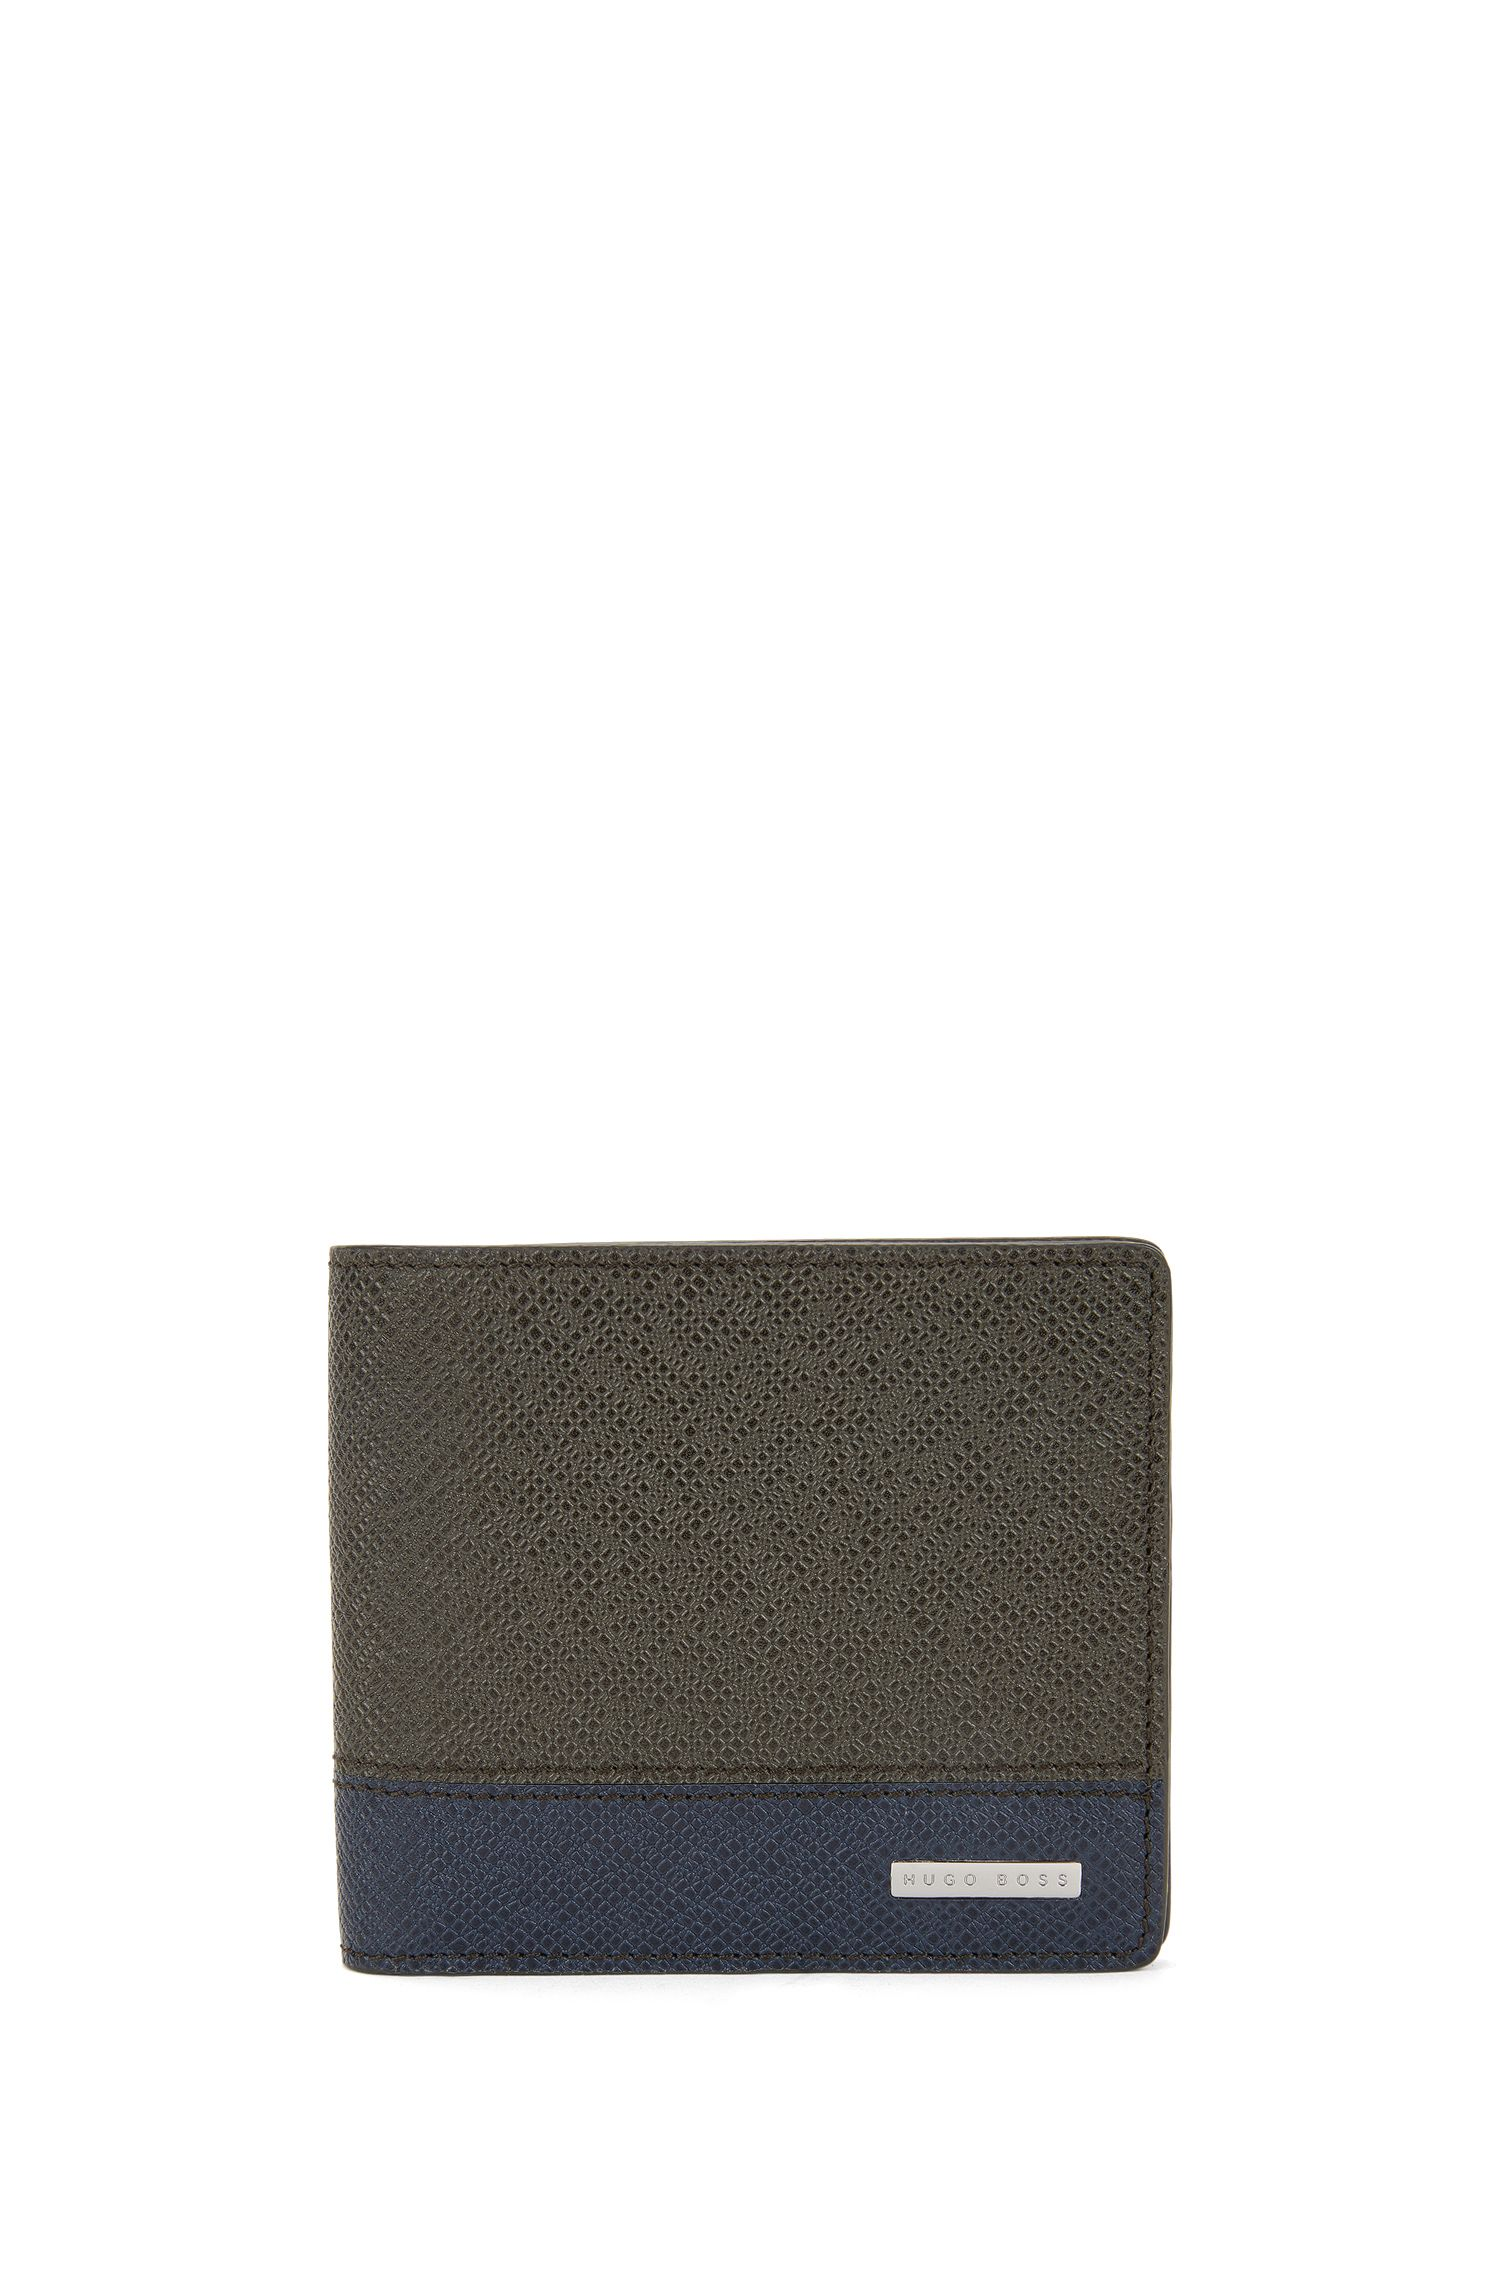 Klapp-Geldbörse aus Palmellato-Leder im Colour-Block-Design aus der Signature Collection